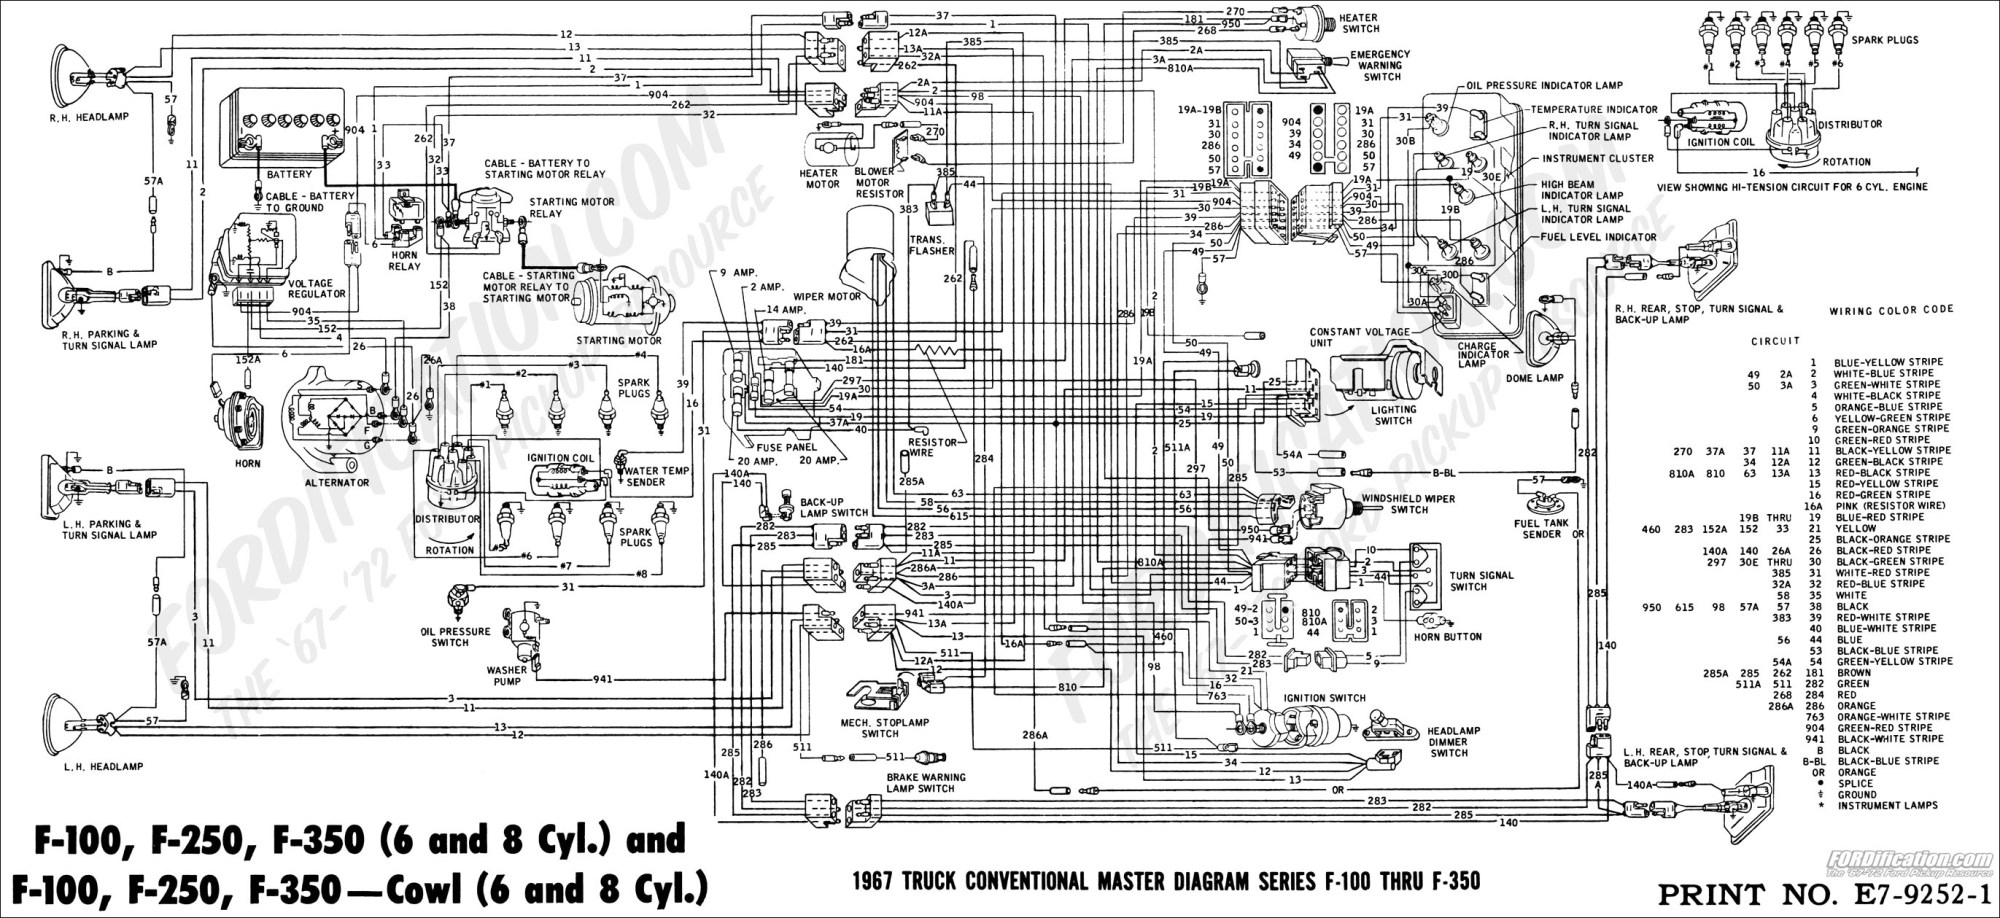 hight resolution of 1989 e150 wiring diagram blog wiring diagram 1988 ford f350 wiring diagram 1988 ford e150 wiring